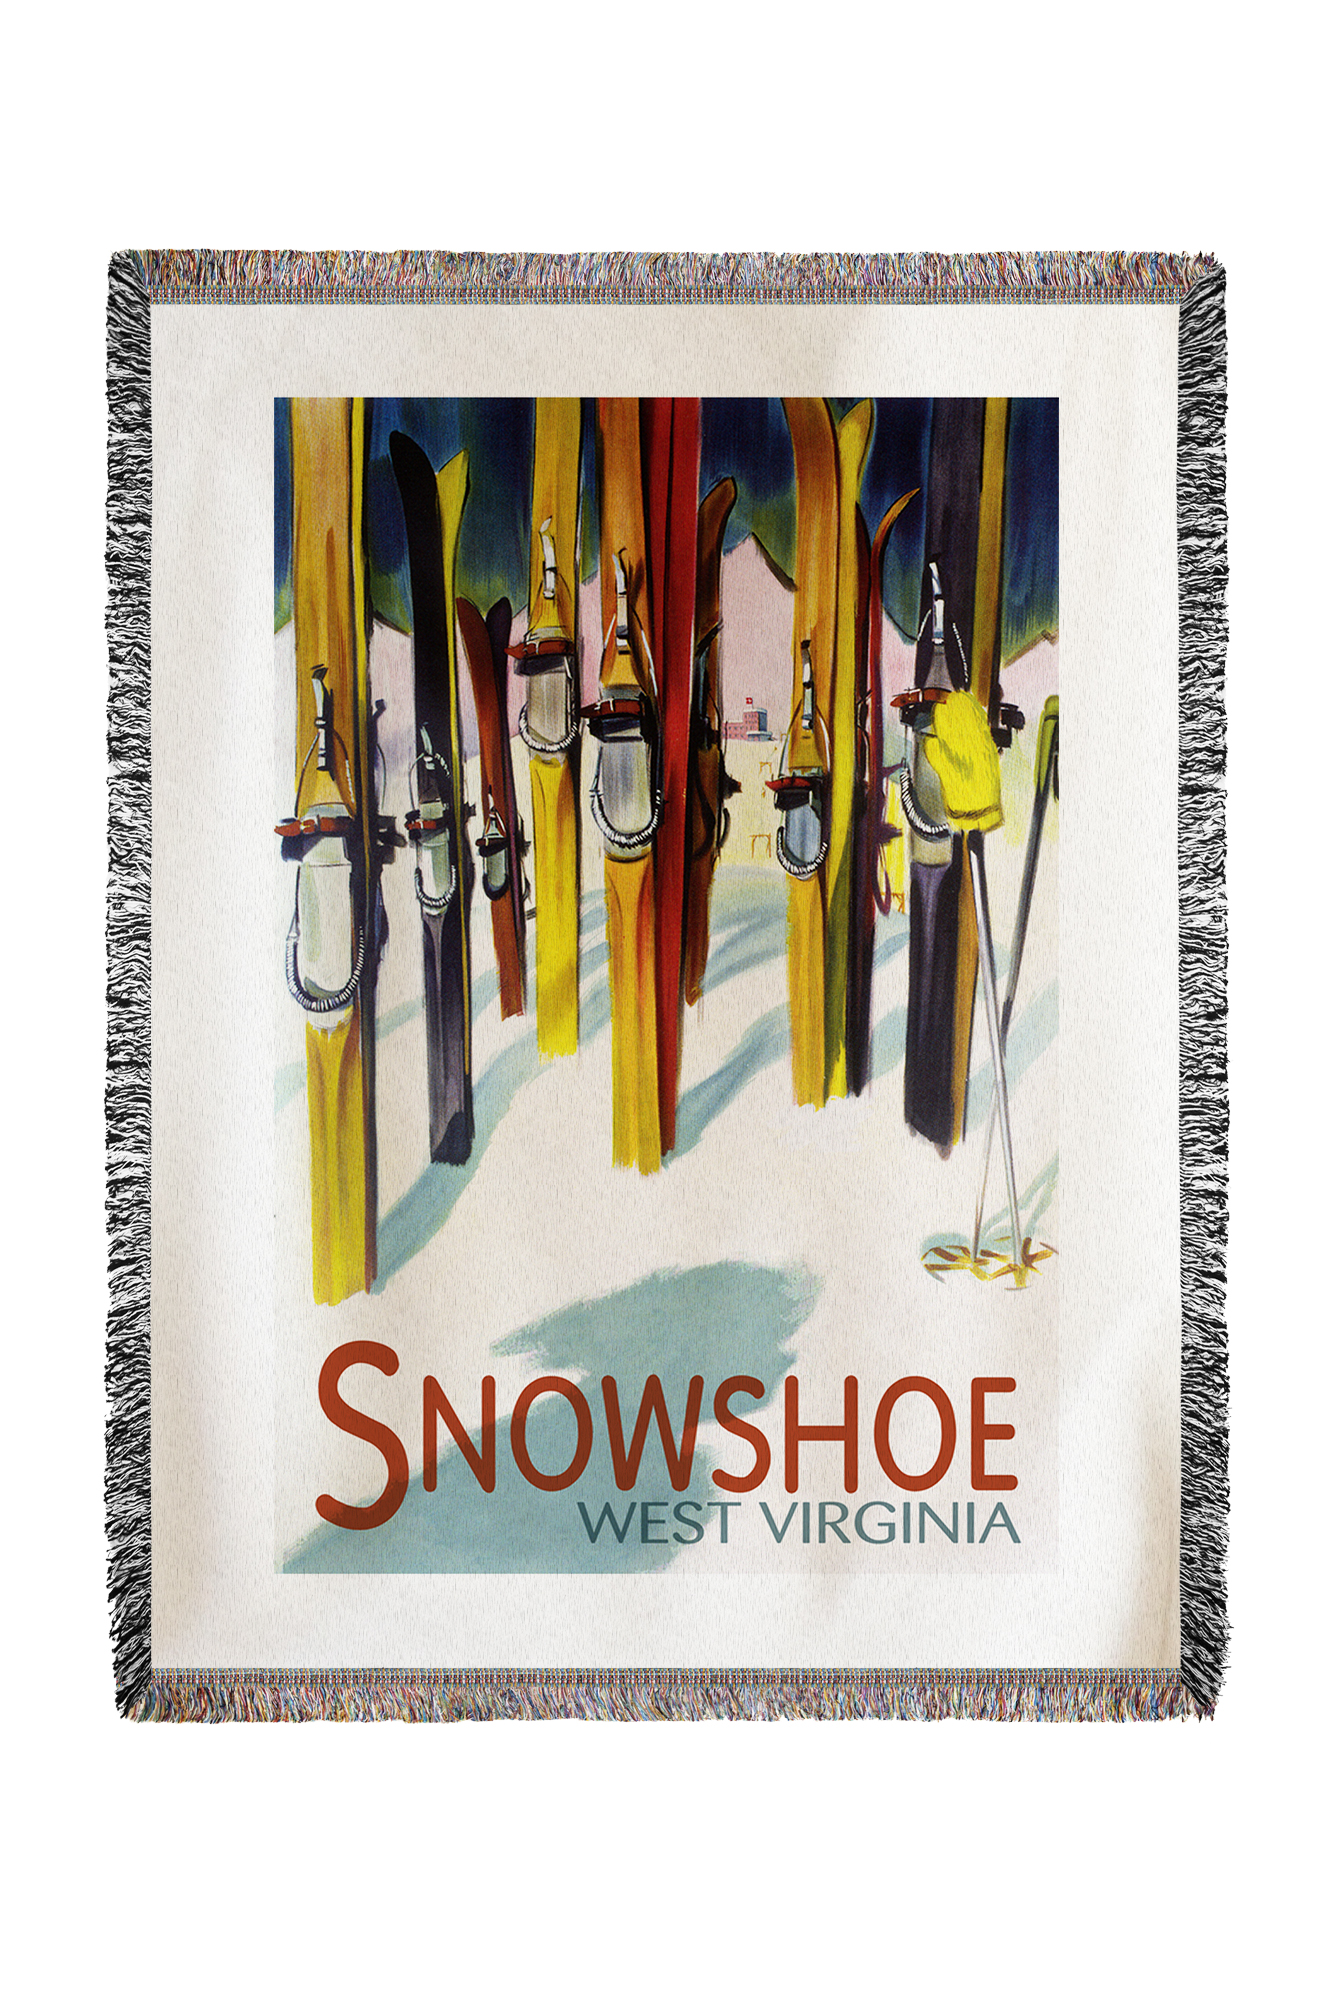 Snowshoe, West Virginia Colorful Skis Lantern Press Artwork (60x80 Woven Chenille Yarn Blanket) by Lantern Press